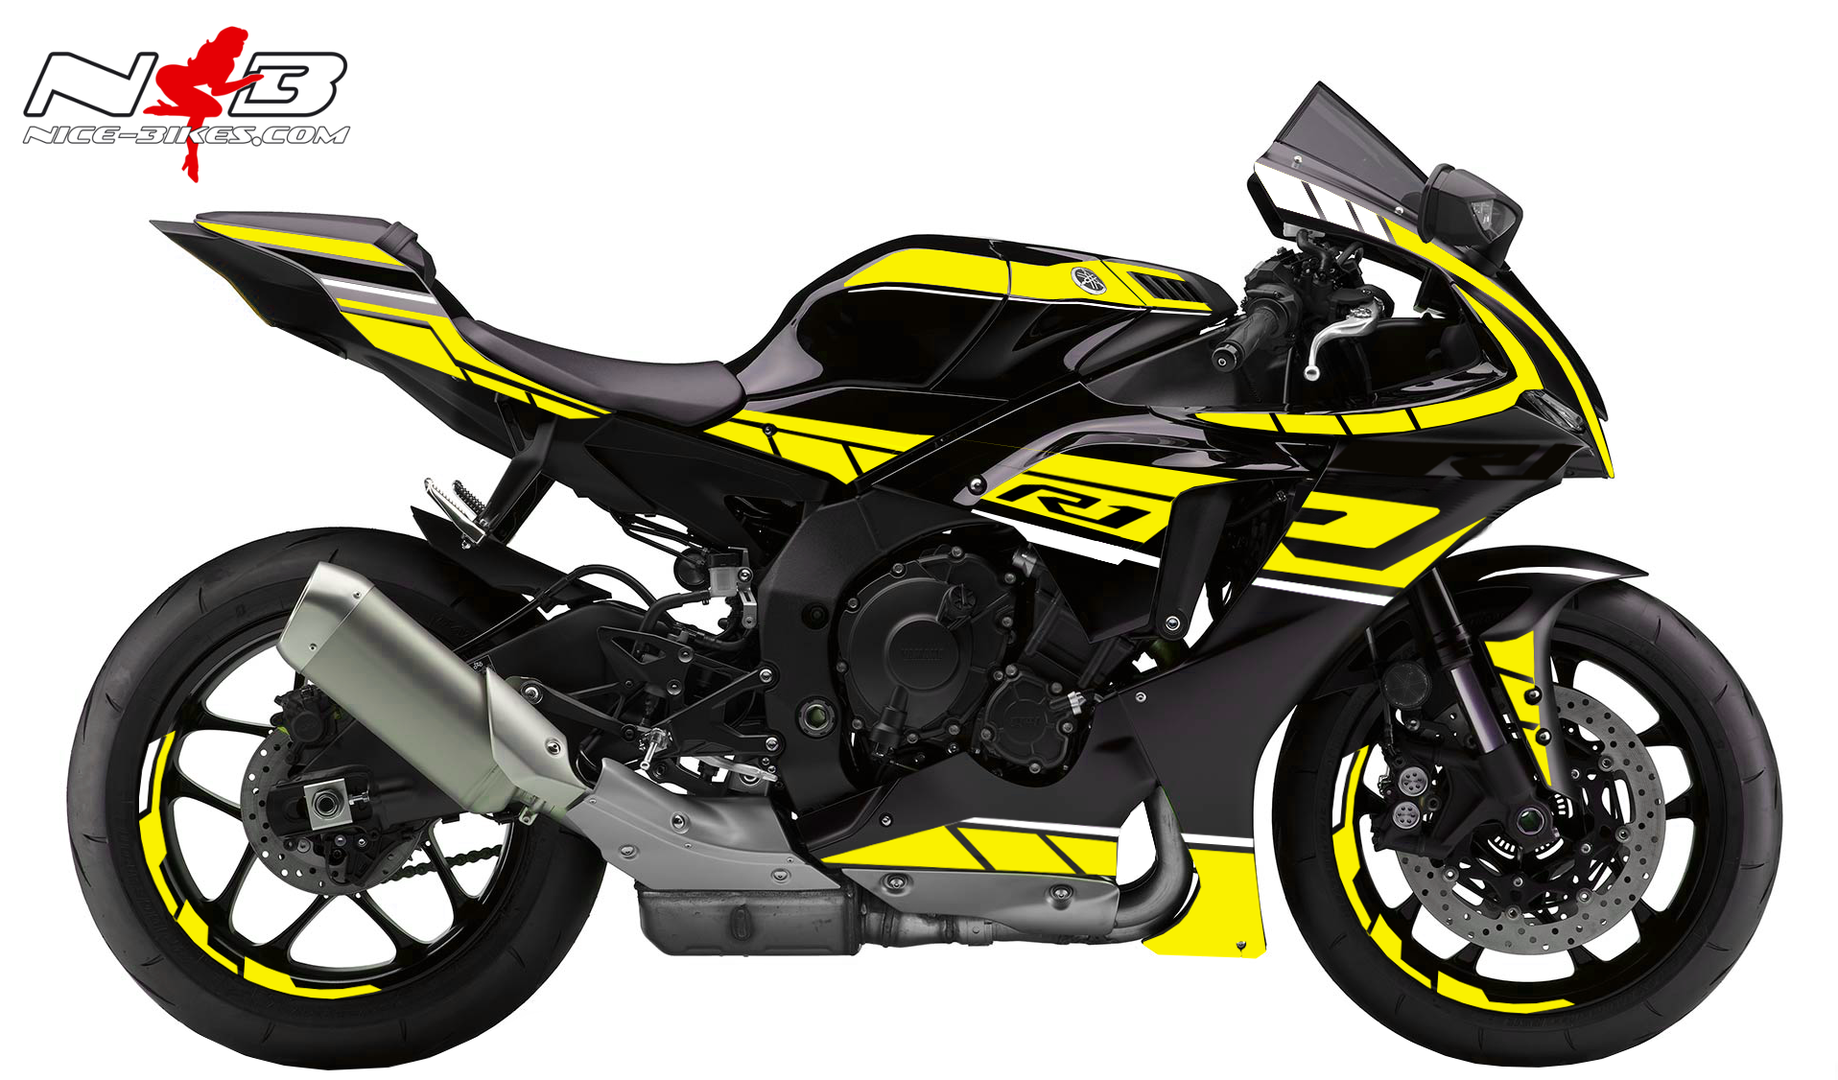 Foliendesign YAMAHA R1 Bj. 2020 Hornet Yellow